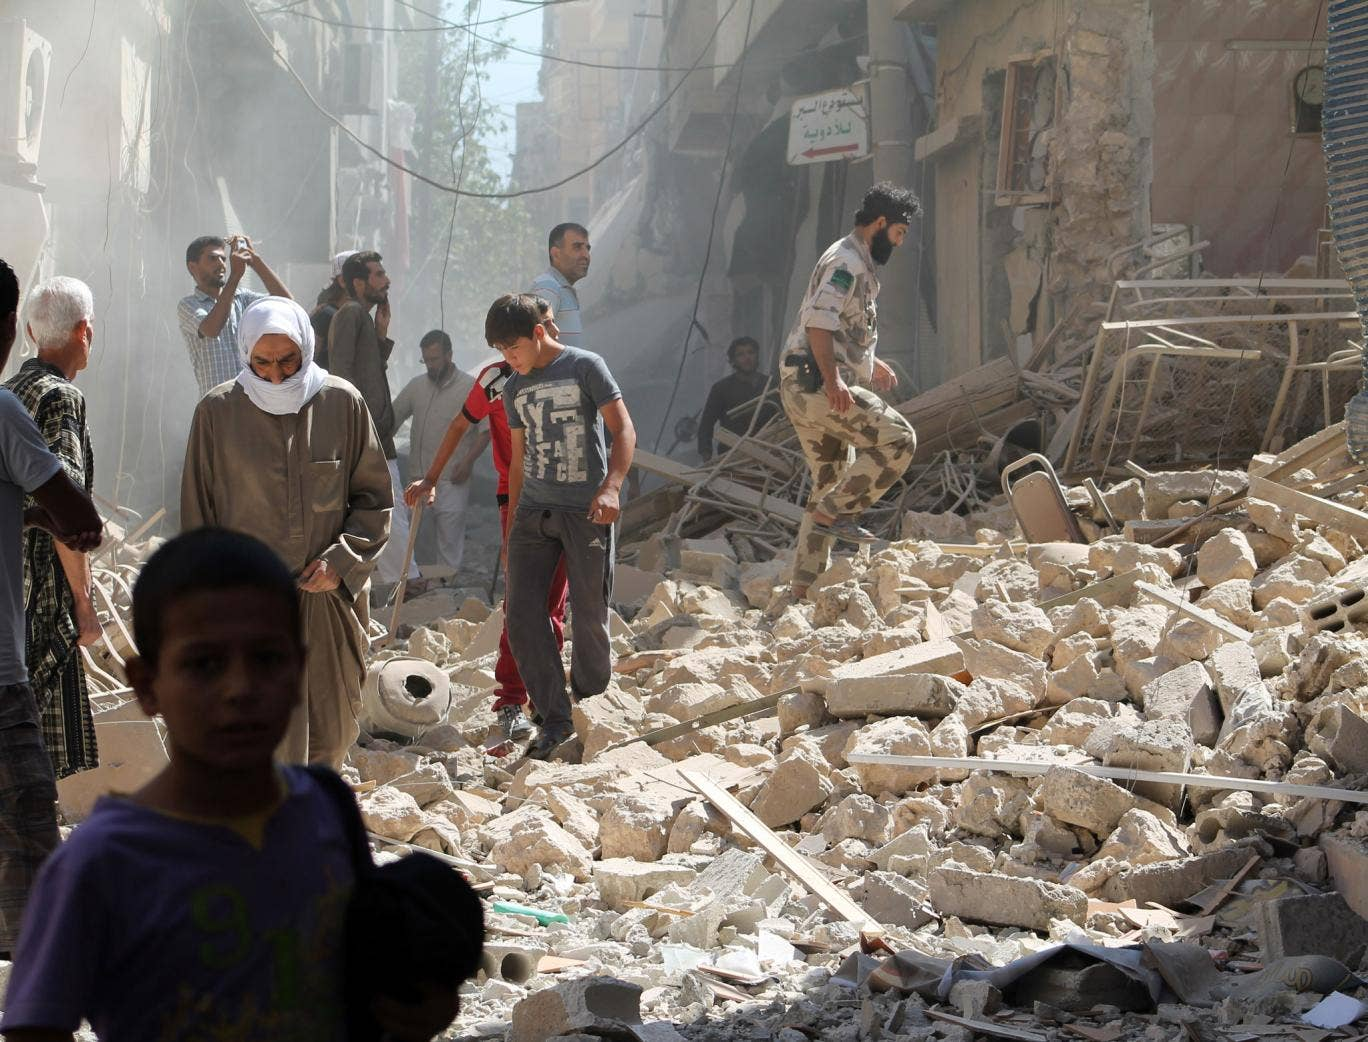 Residents of Syria's eastern town of Deir Ezzor walk past the debris of a building reportedly hit by a missile on September 26, 2013. The Syrian Observatory for Human Rights said that there was fighting between rebels and units of the jihadist Islamic Sta